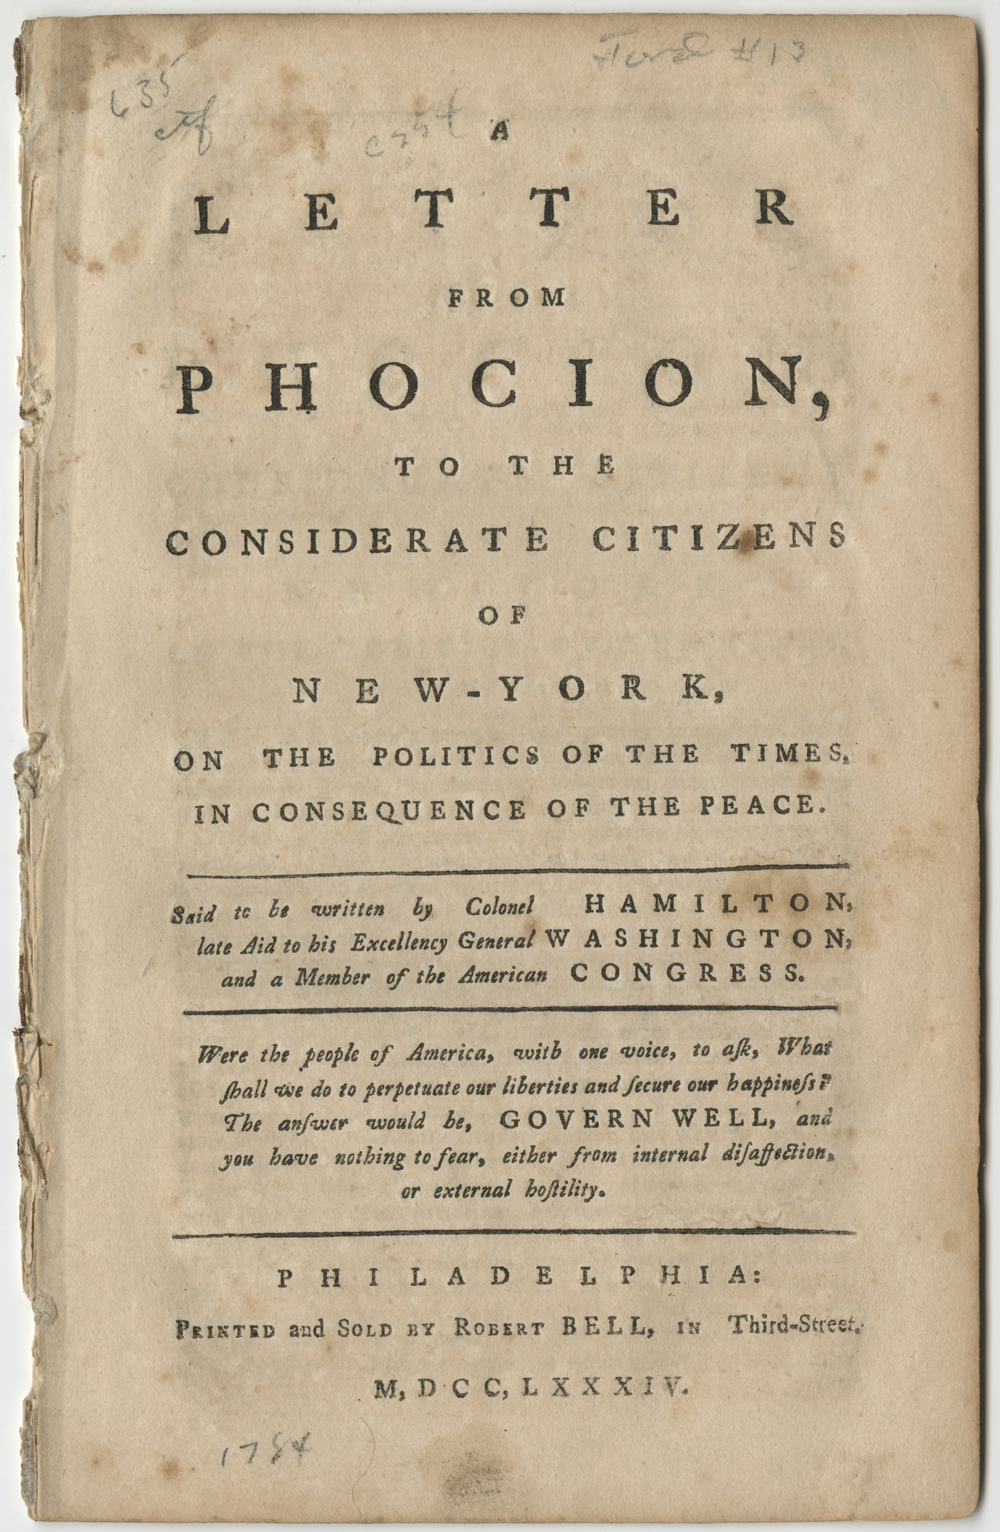 A Letter from Phocion, to the Considerate Citizens of New-York on the Politics of the Times, in Consequence of the Peace, 1784.